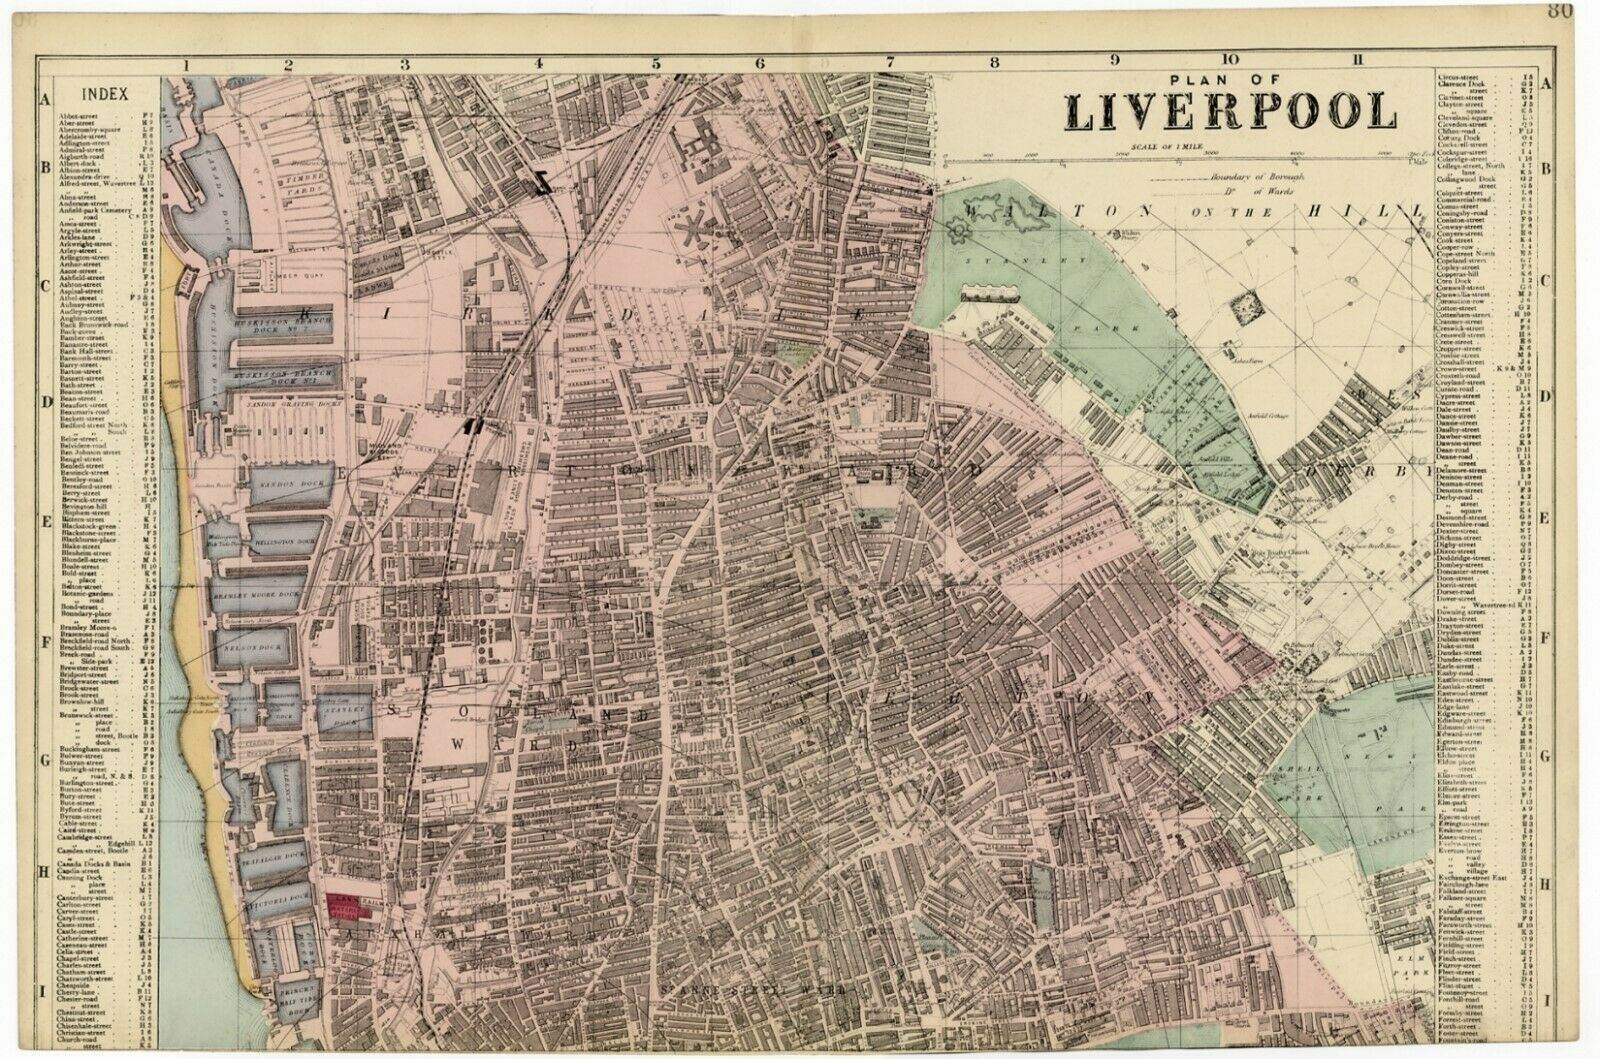 1883 Antique Map Large STREET PLAN LIVERPOOL Nth EVERTON ... on marylebone map, liverpool england central map, borough map, paddington station map, russell square map, bangkok airport map, leadenhall market map, covent garden map, grosvenor square map, camden town map, east india map, west end map, tower hill map,